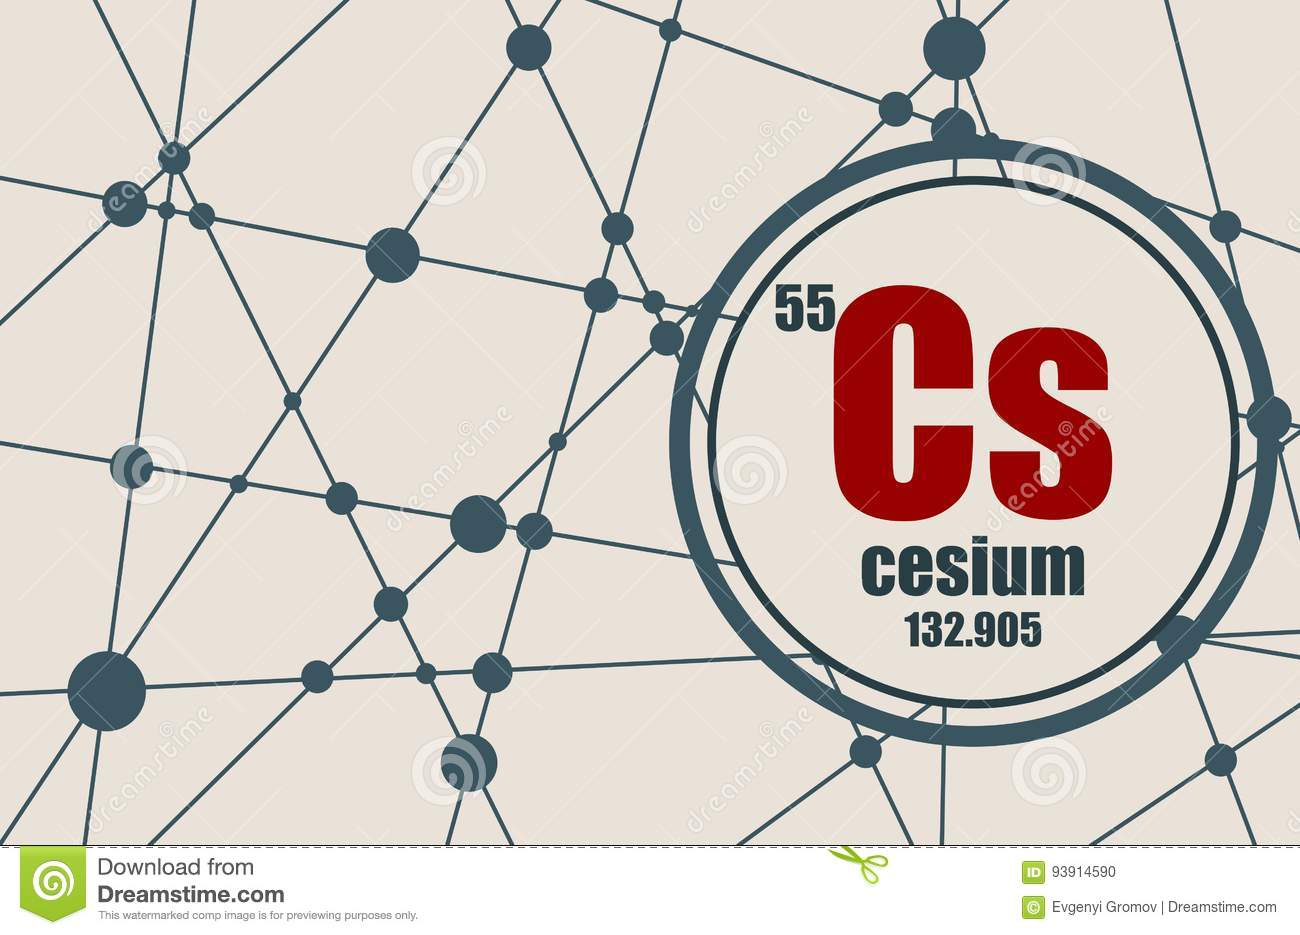 Cesium chemical element  stock vector  Illustration of